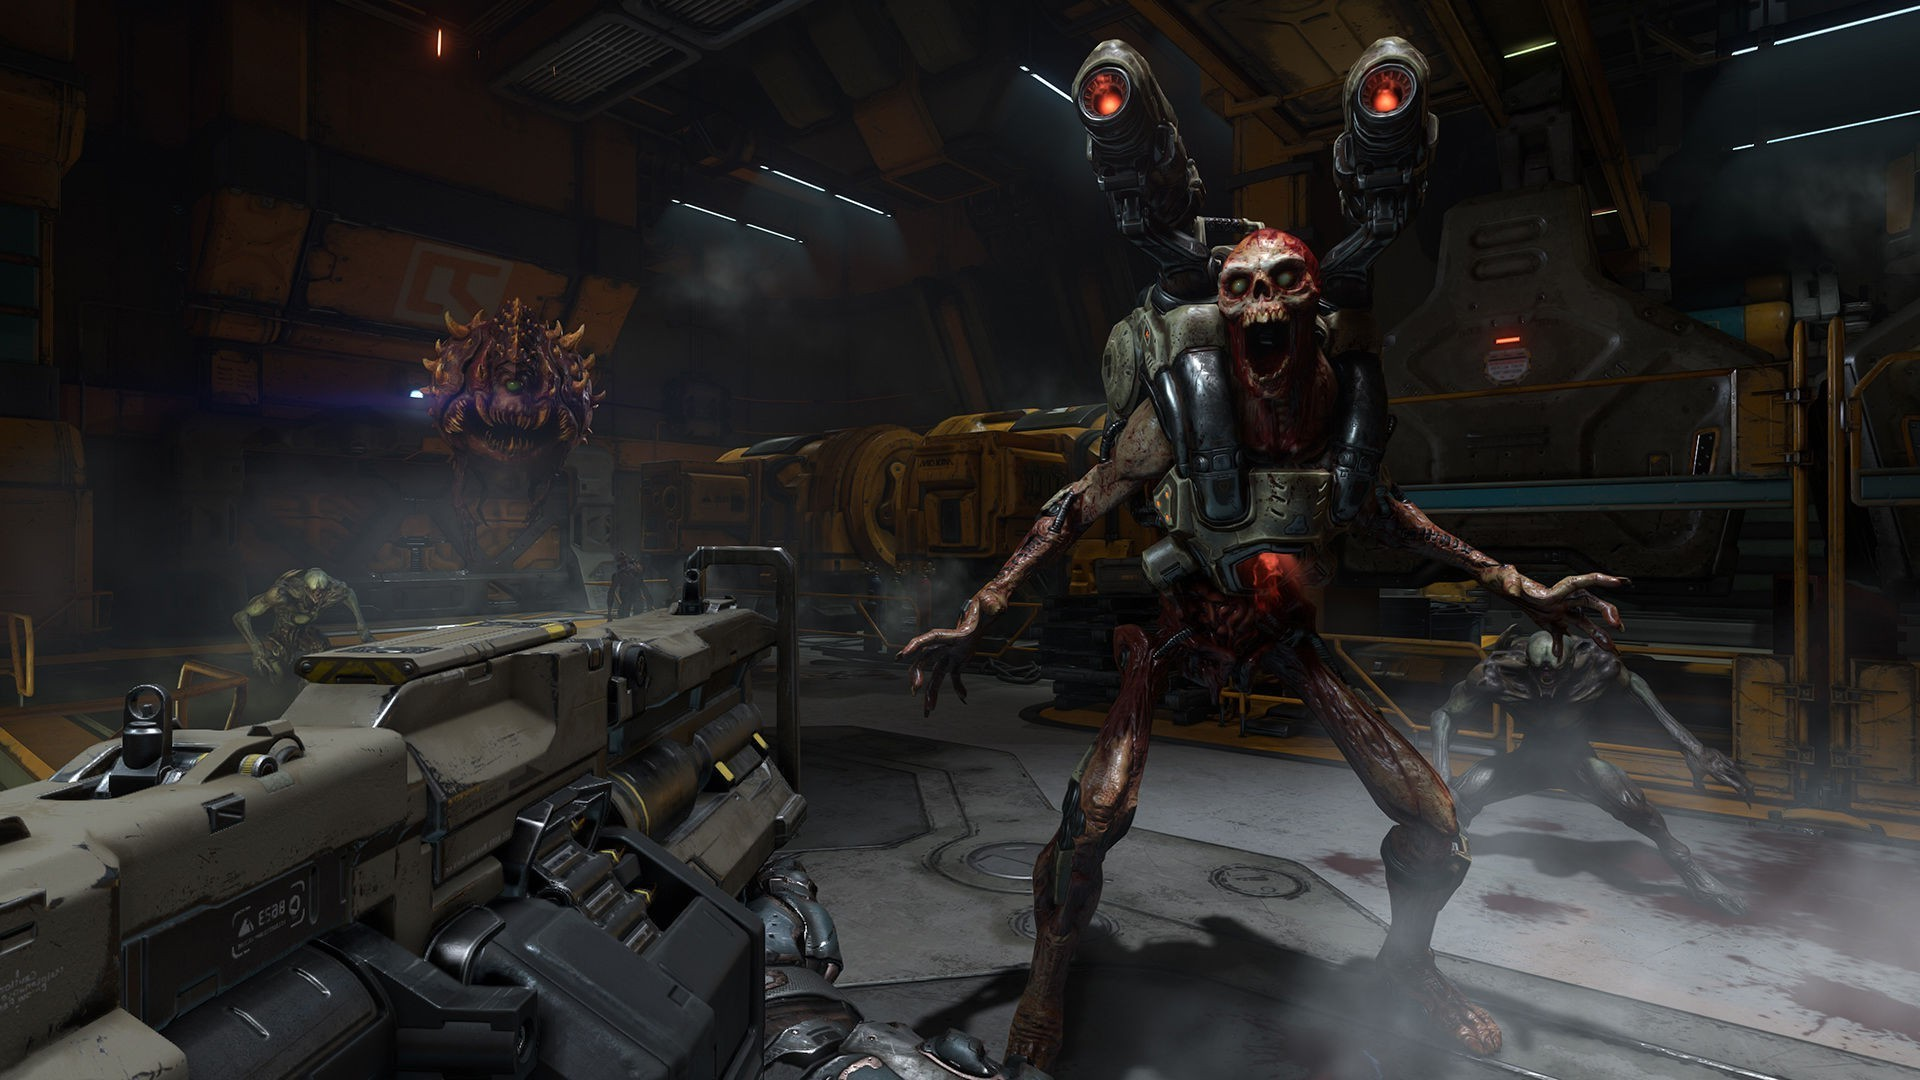 Doom (game), Doom 4, Id Software, Video Games, Shooter, First person  Shooter Wallpapers HD / Desktop and Mobile Backgrounds